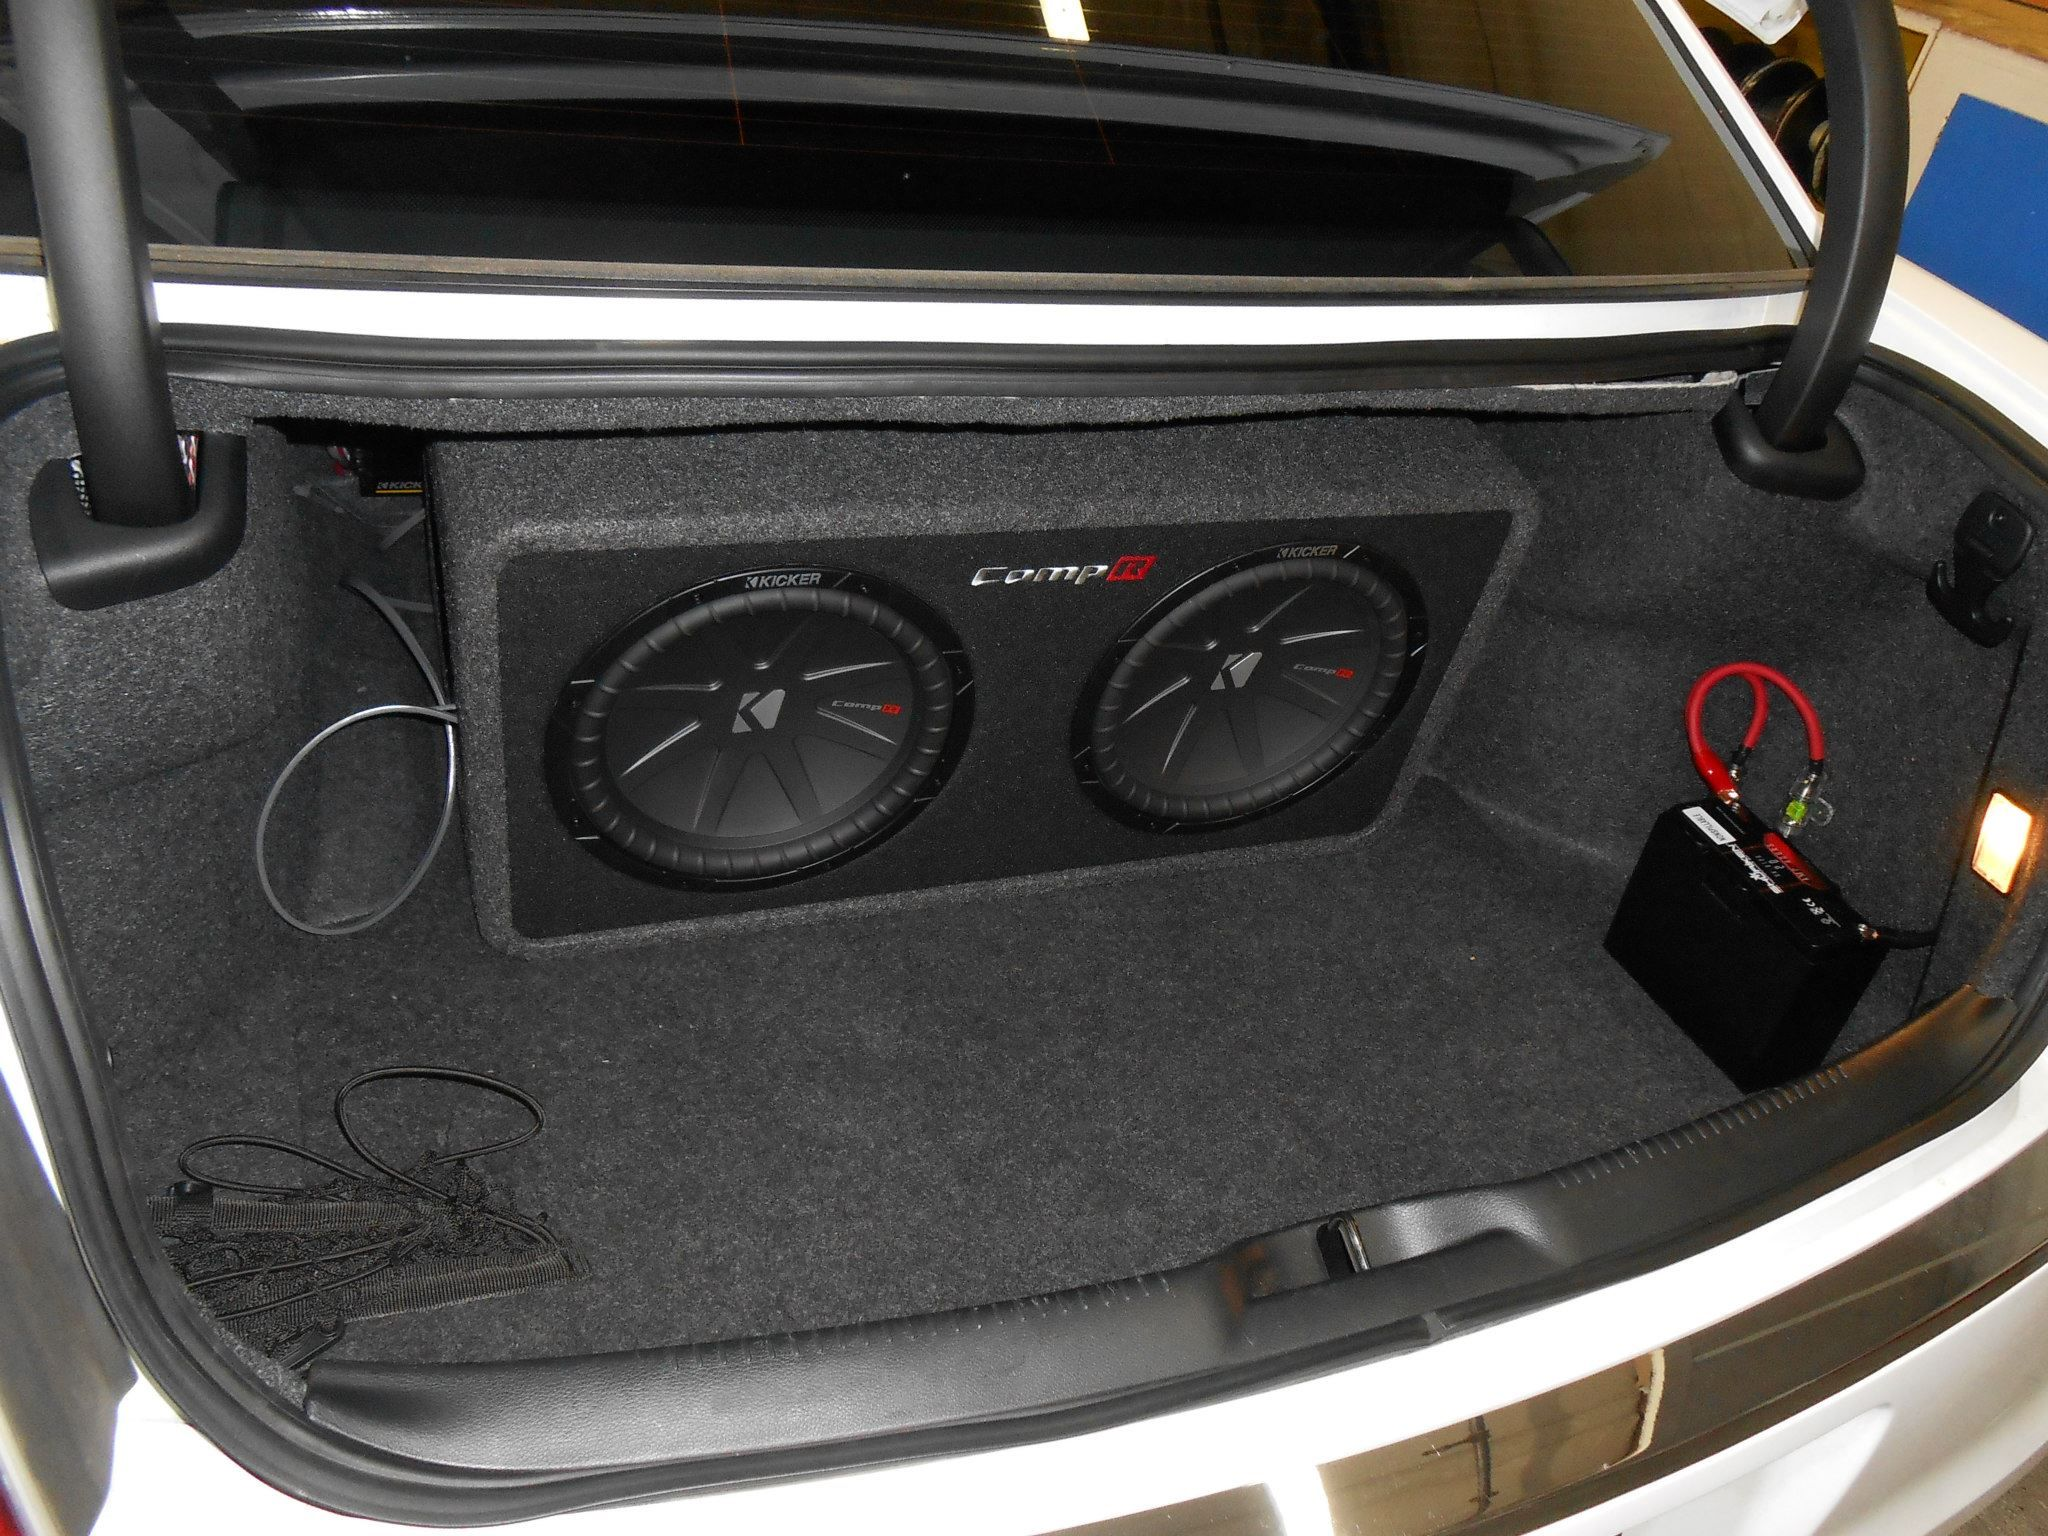 2 Comp R Subwoofer Hooked Up To A 1200 Watt Kicker Amp And